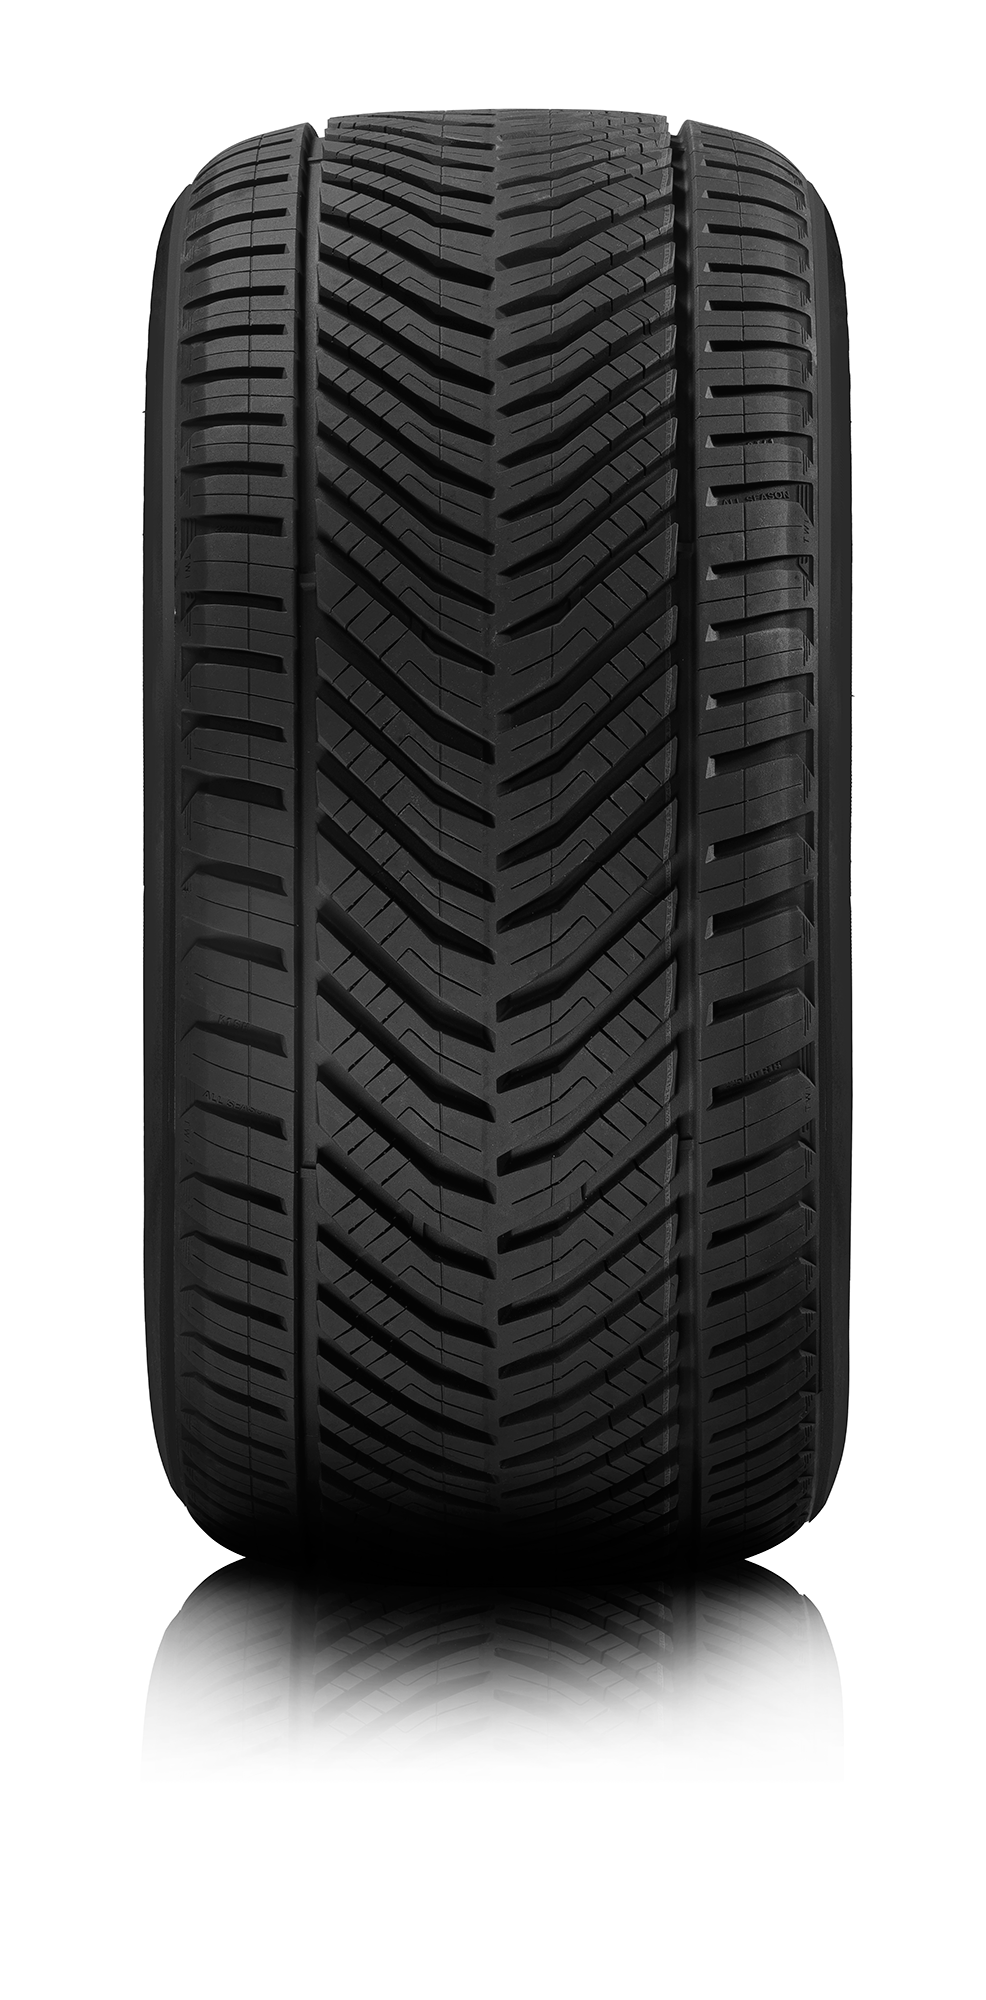 Gomme Nuove Orium 165/65 R14 79T ALL SEASON M+S pneumatici nuovi All Season